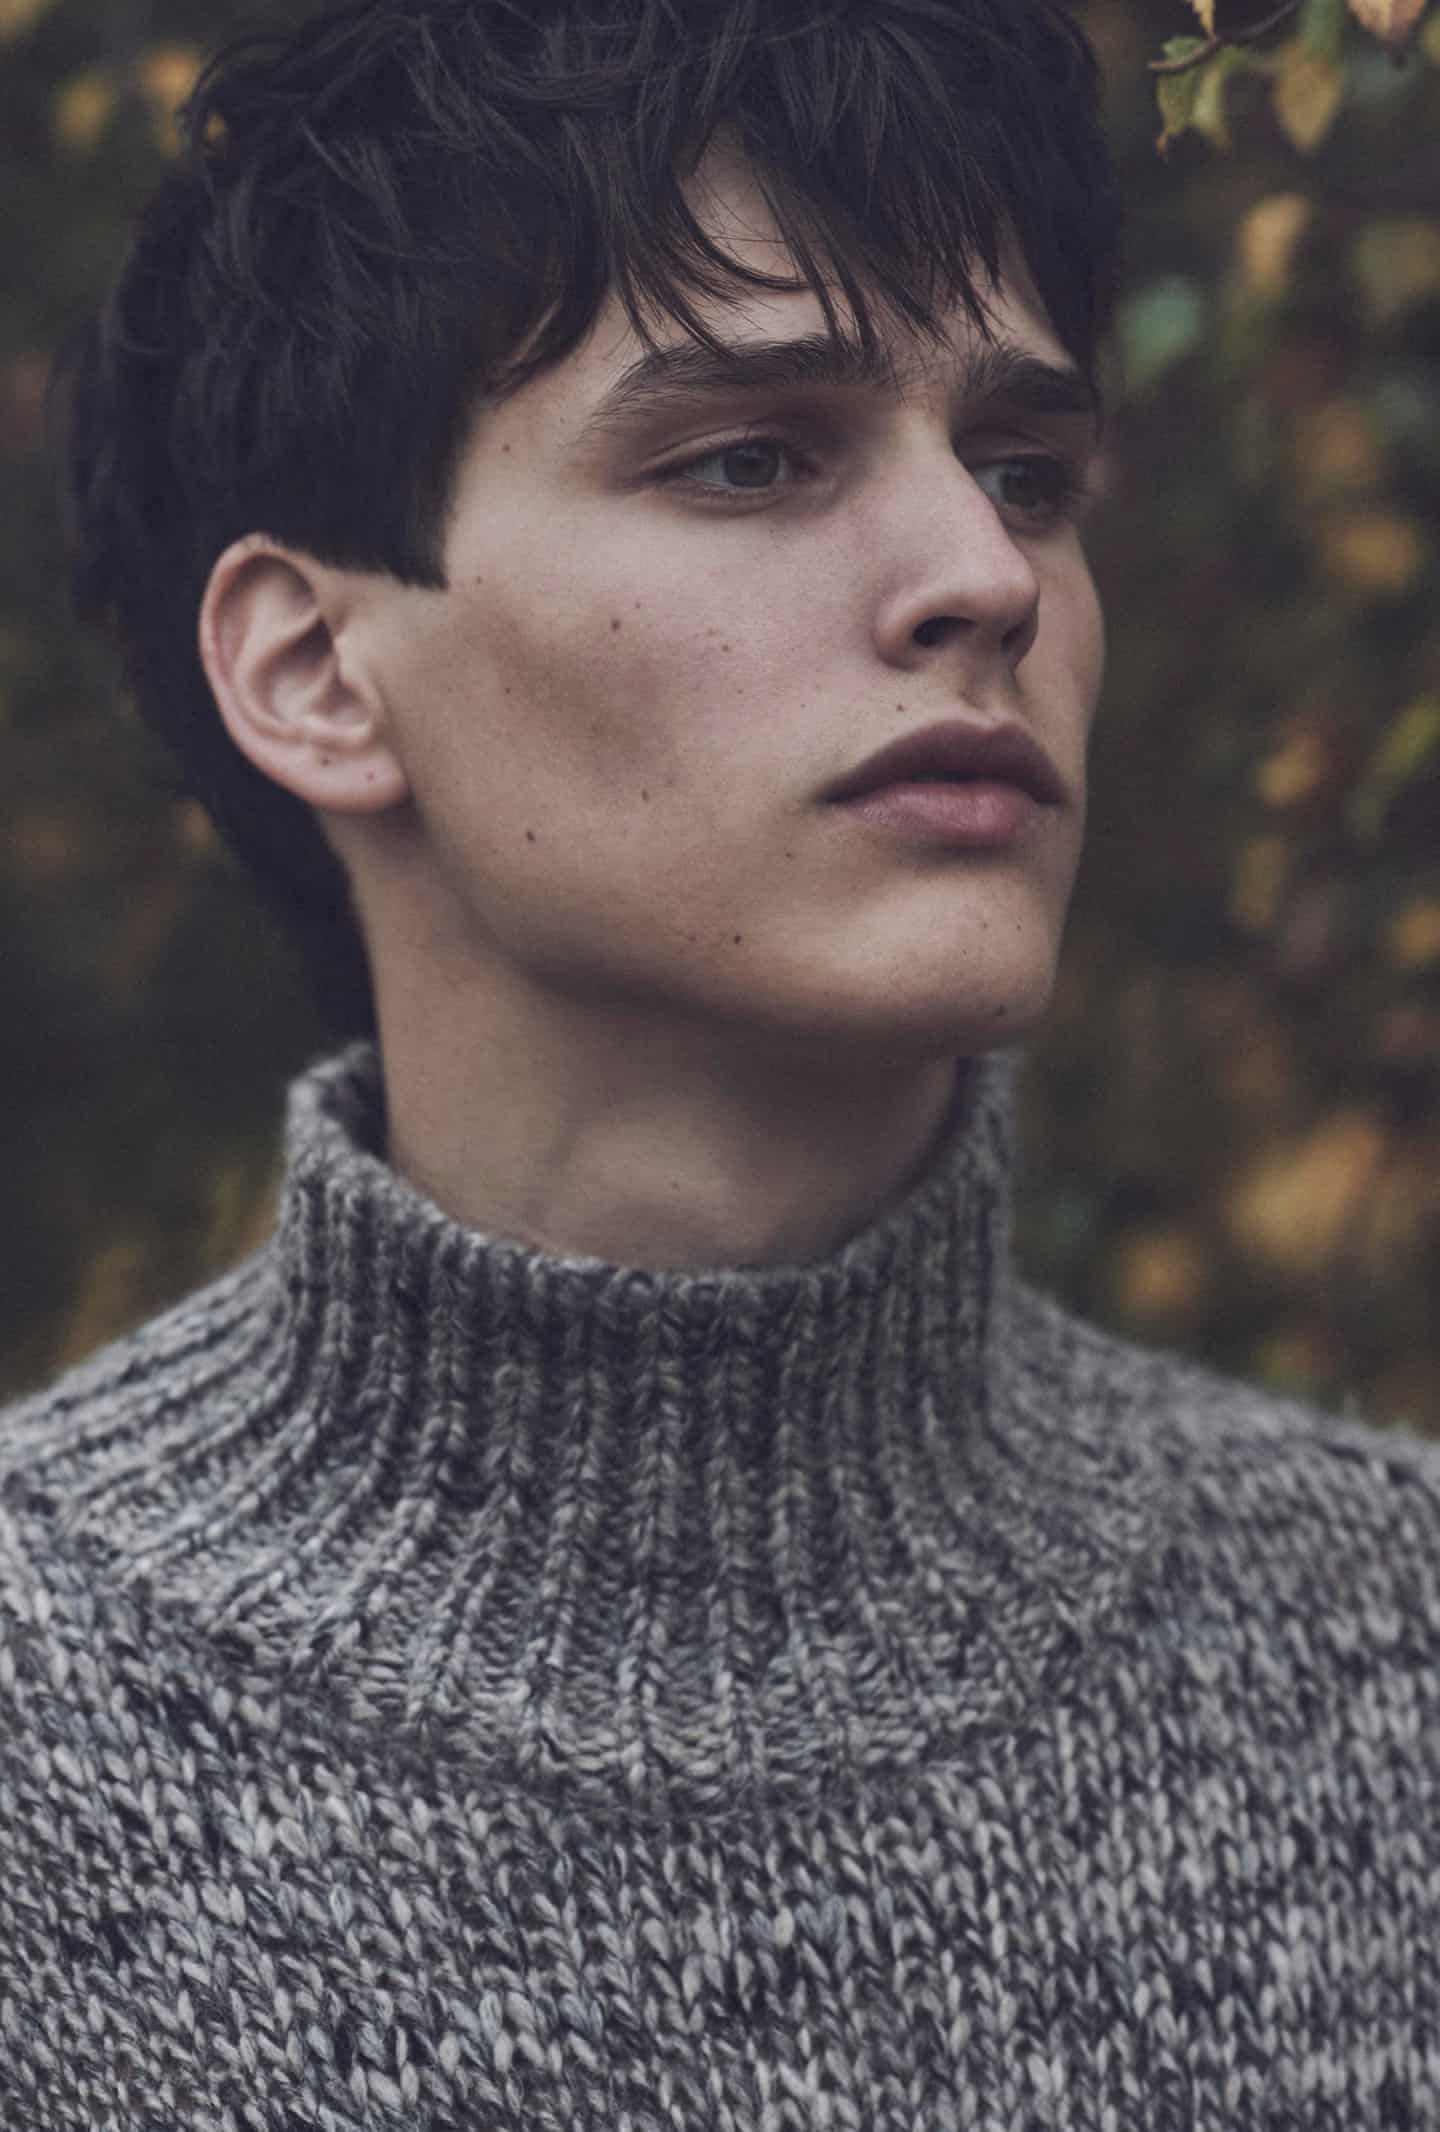 Fall guy: men's autumn jackets and jumpers – in pictures | Fashion | The Guardian